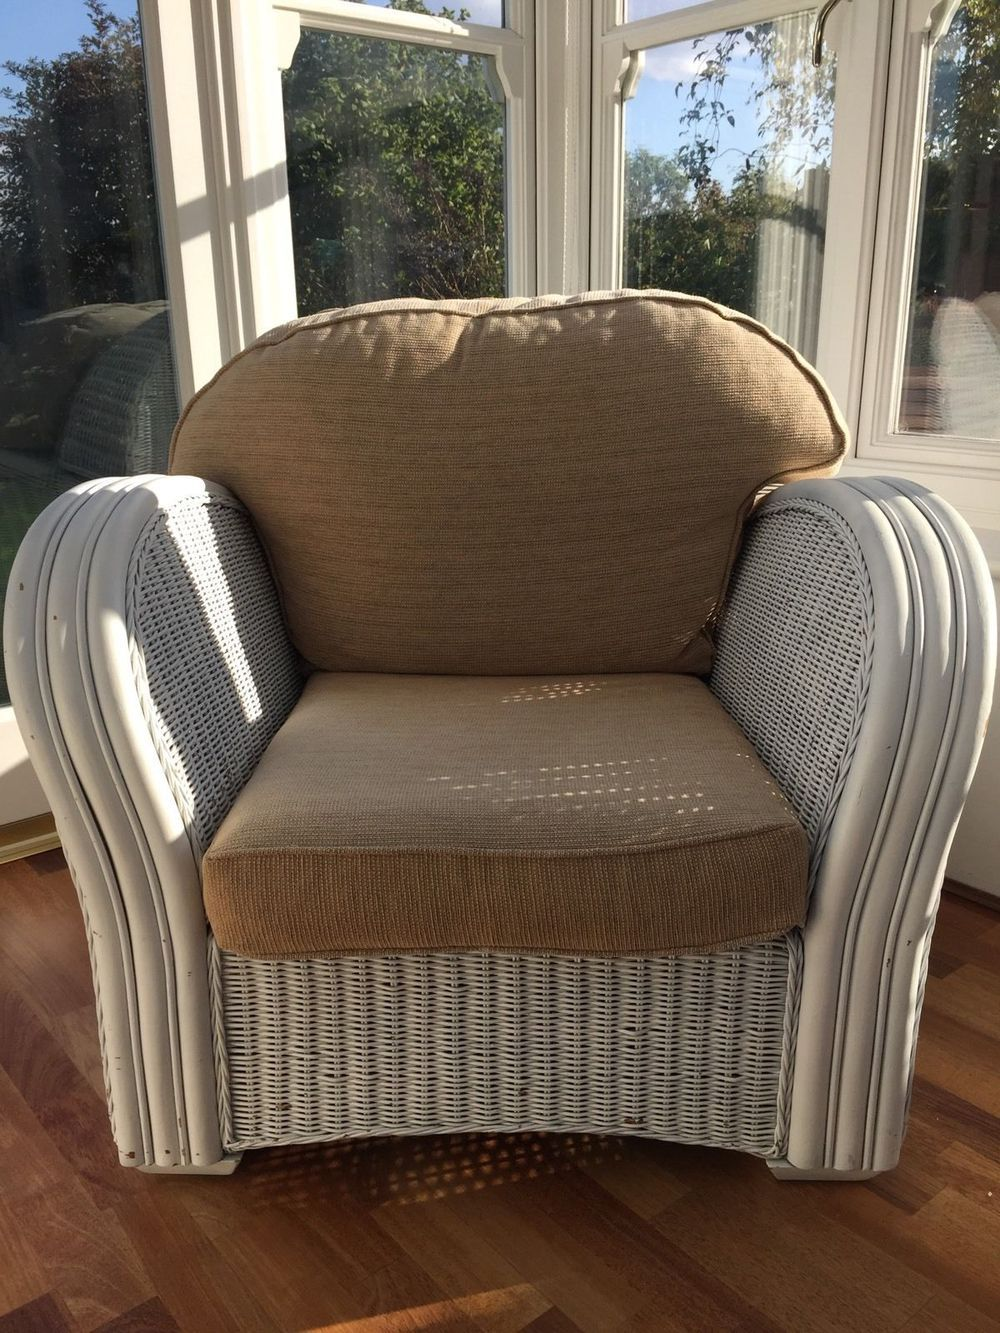 Large Wicker Conservatory Chair via PRELOVED FURNITURE MK